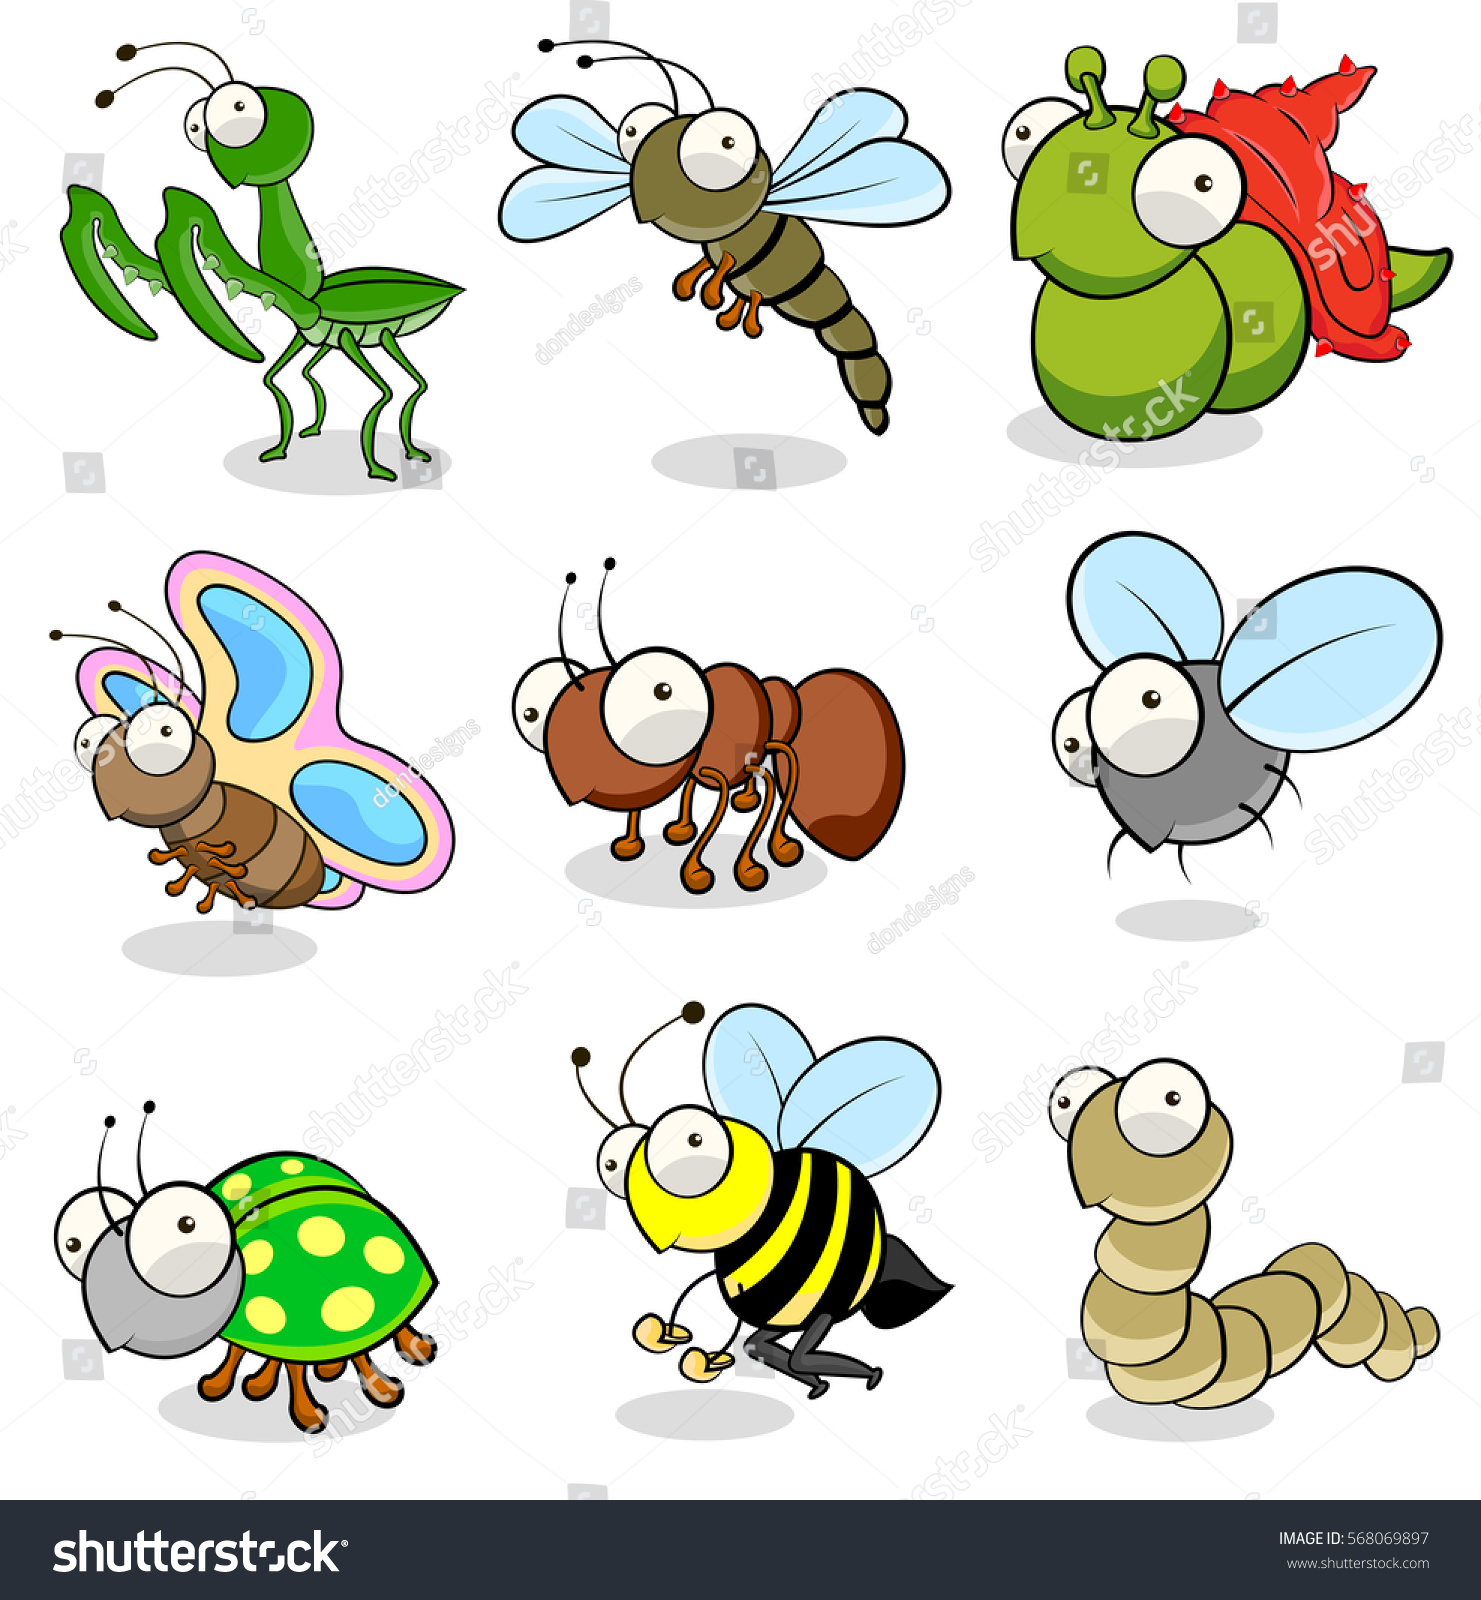 collection animals insects cartoon drawings stock vector 568069897